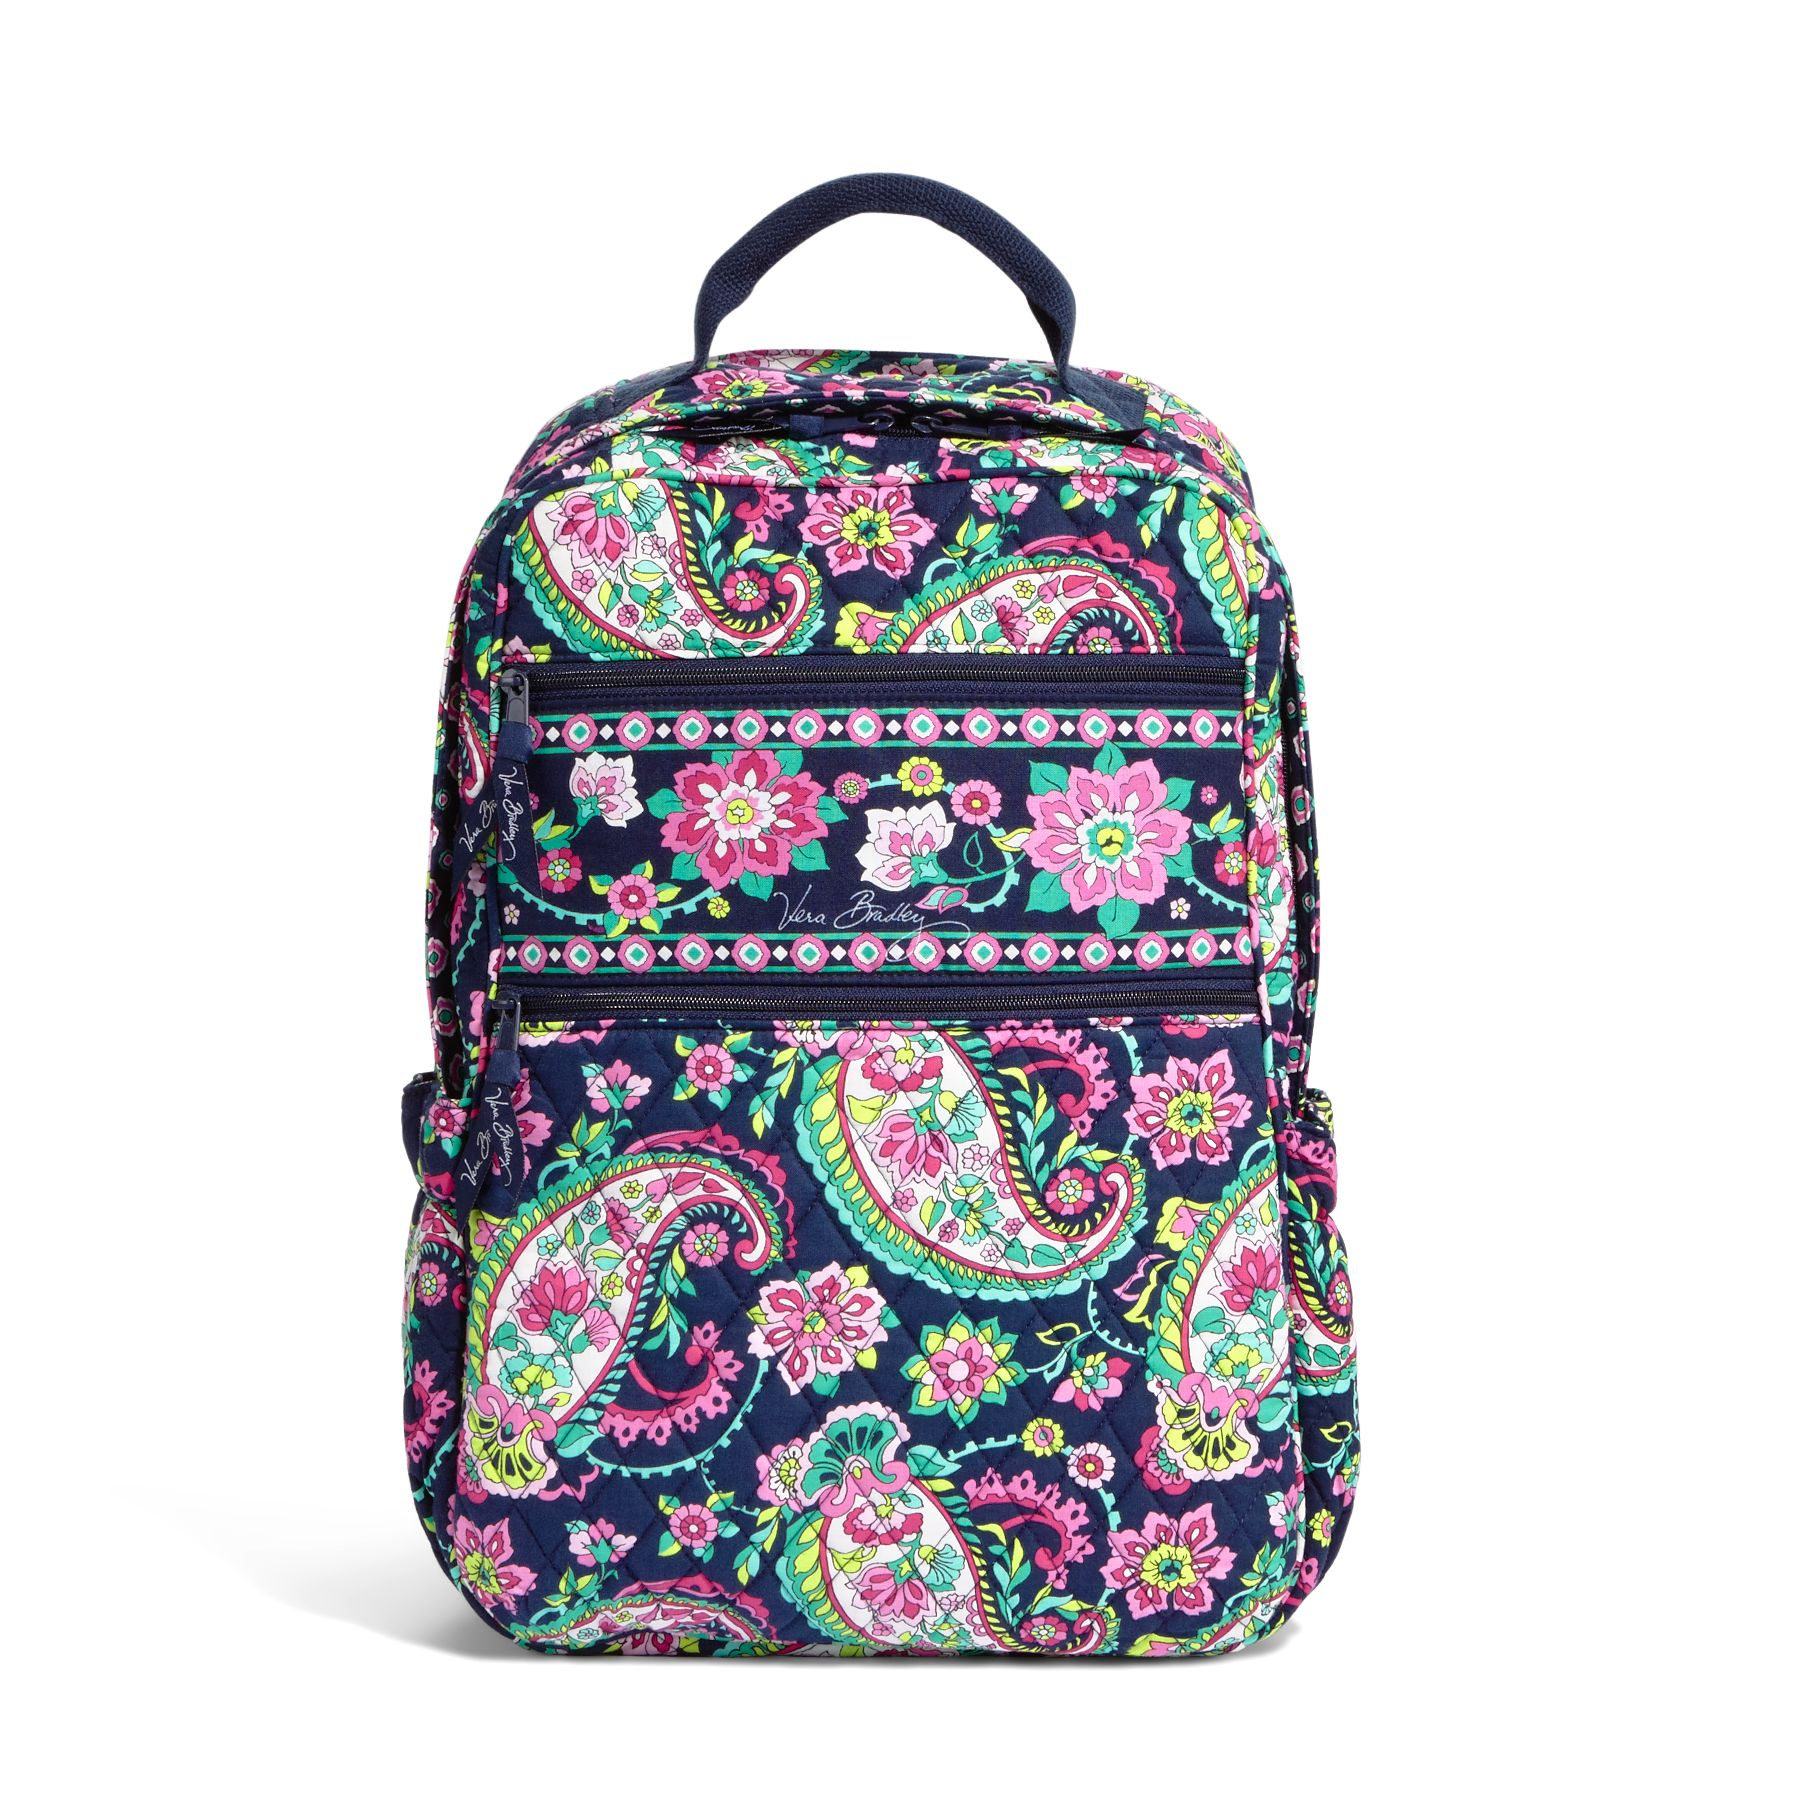 Vera Bradley Tech Backpack in Petal Paisley